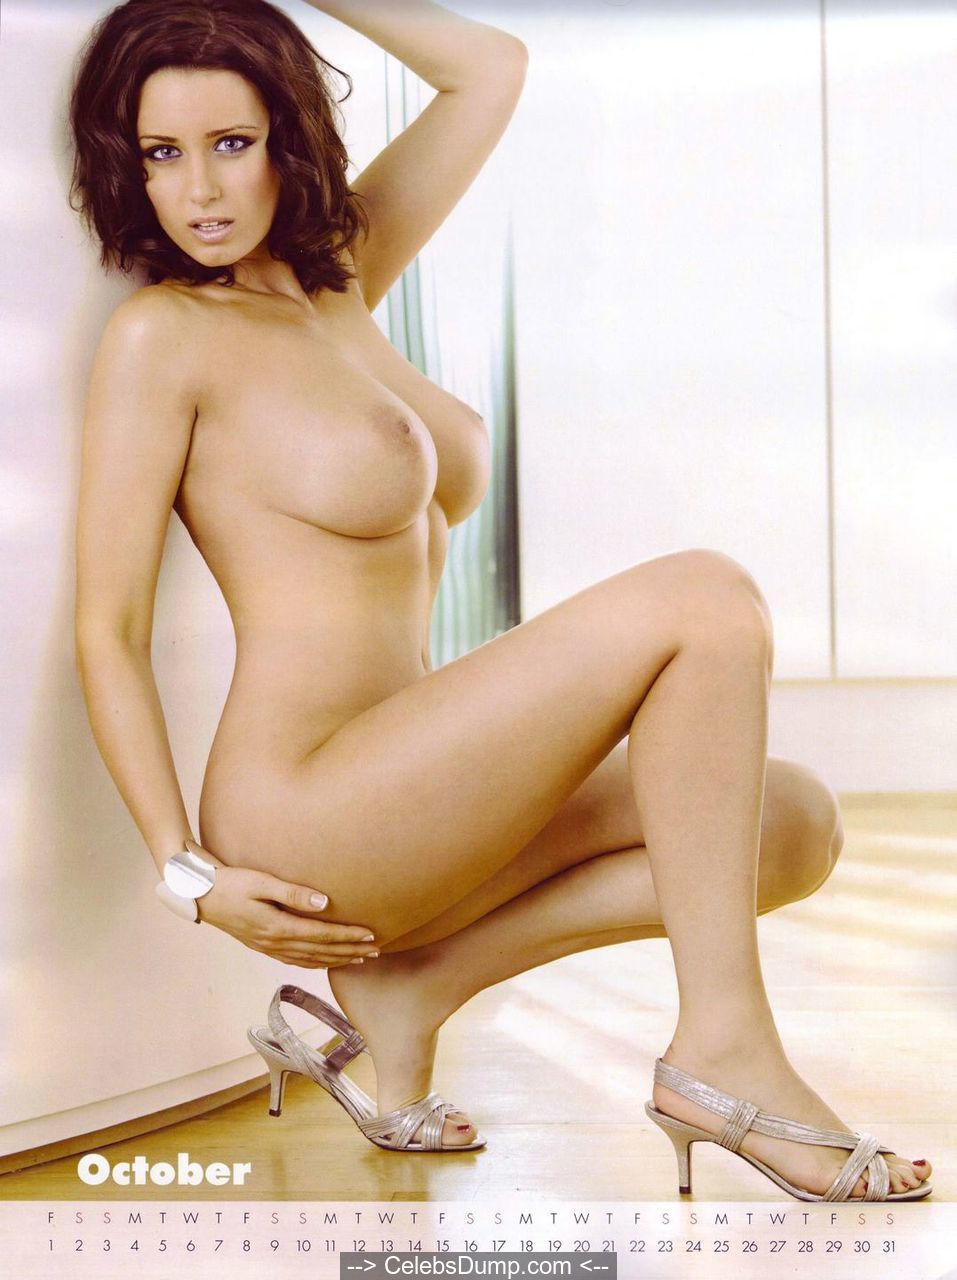 English glamour model Sammy Braddy naked calendar shoots